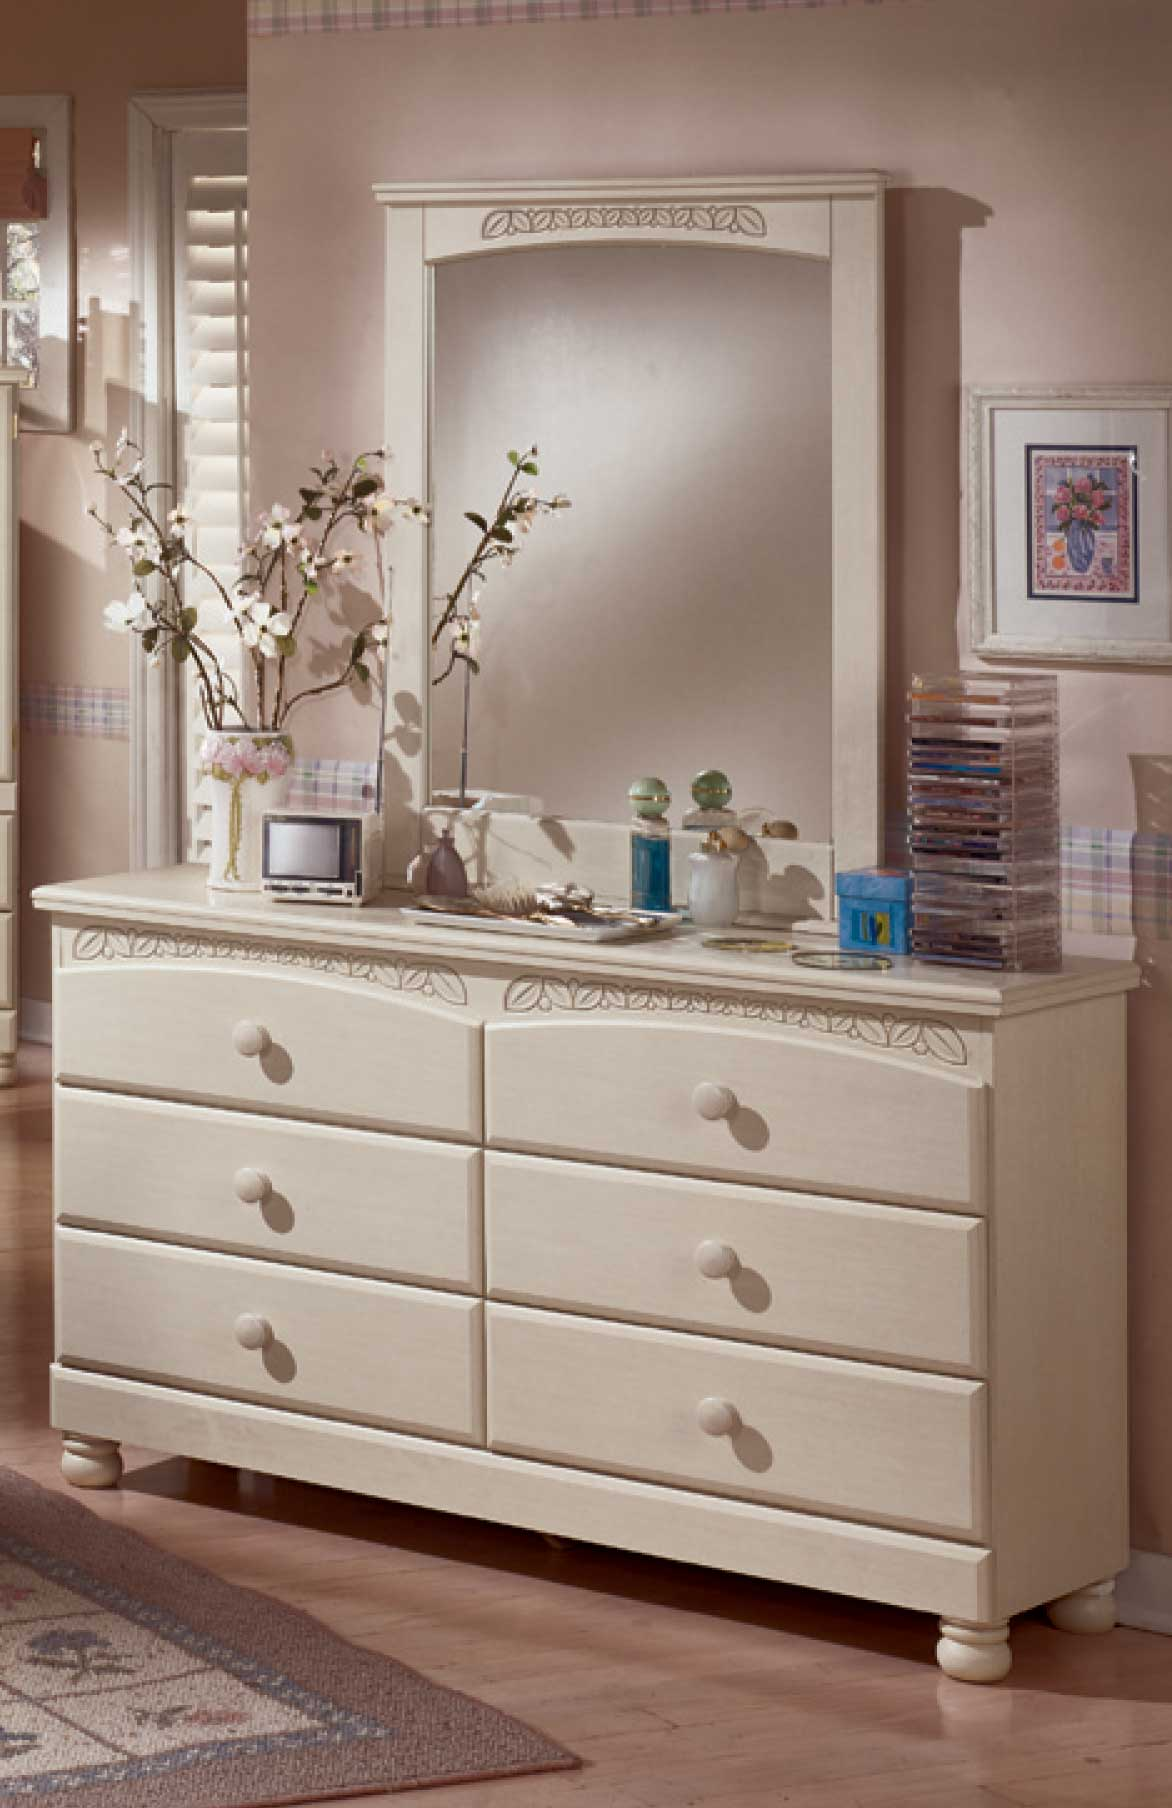 dresser ashleys sets american bedroom master design under dressers siz furniture queen by ashley elegant signature